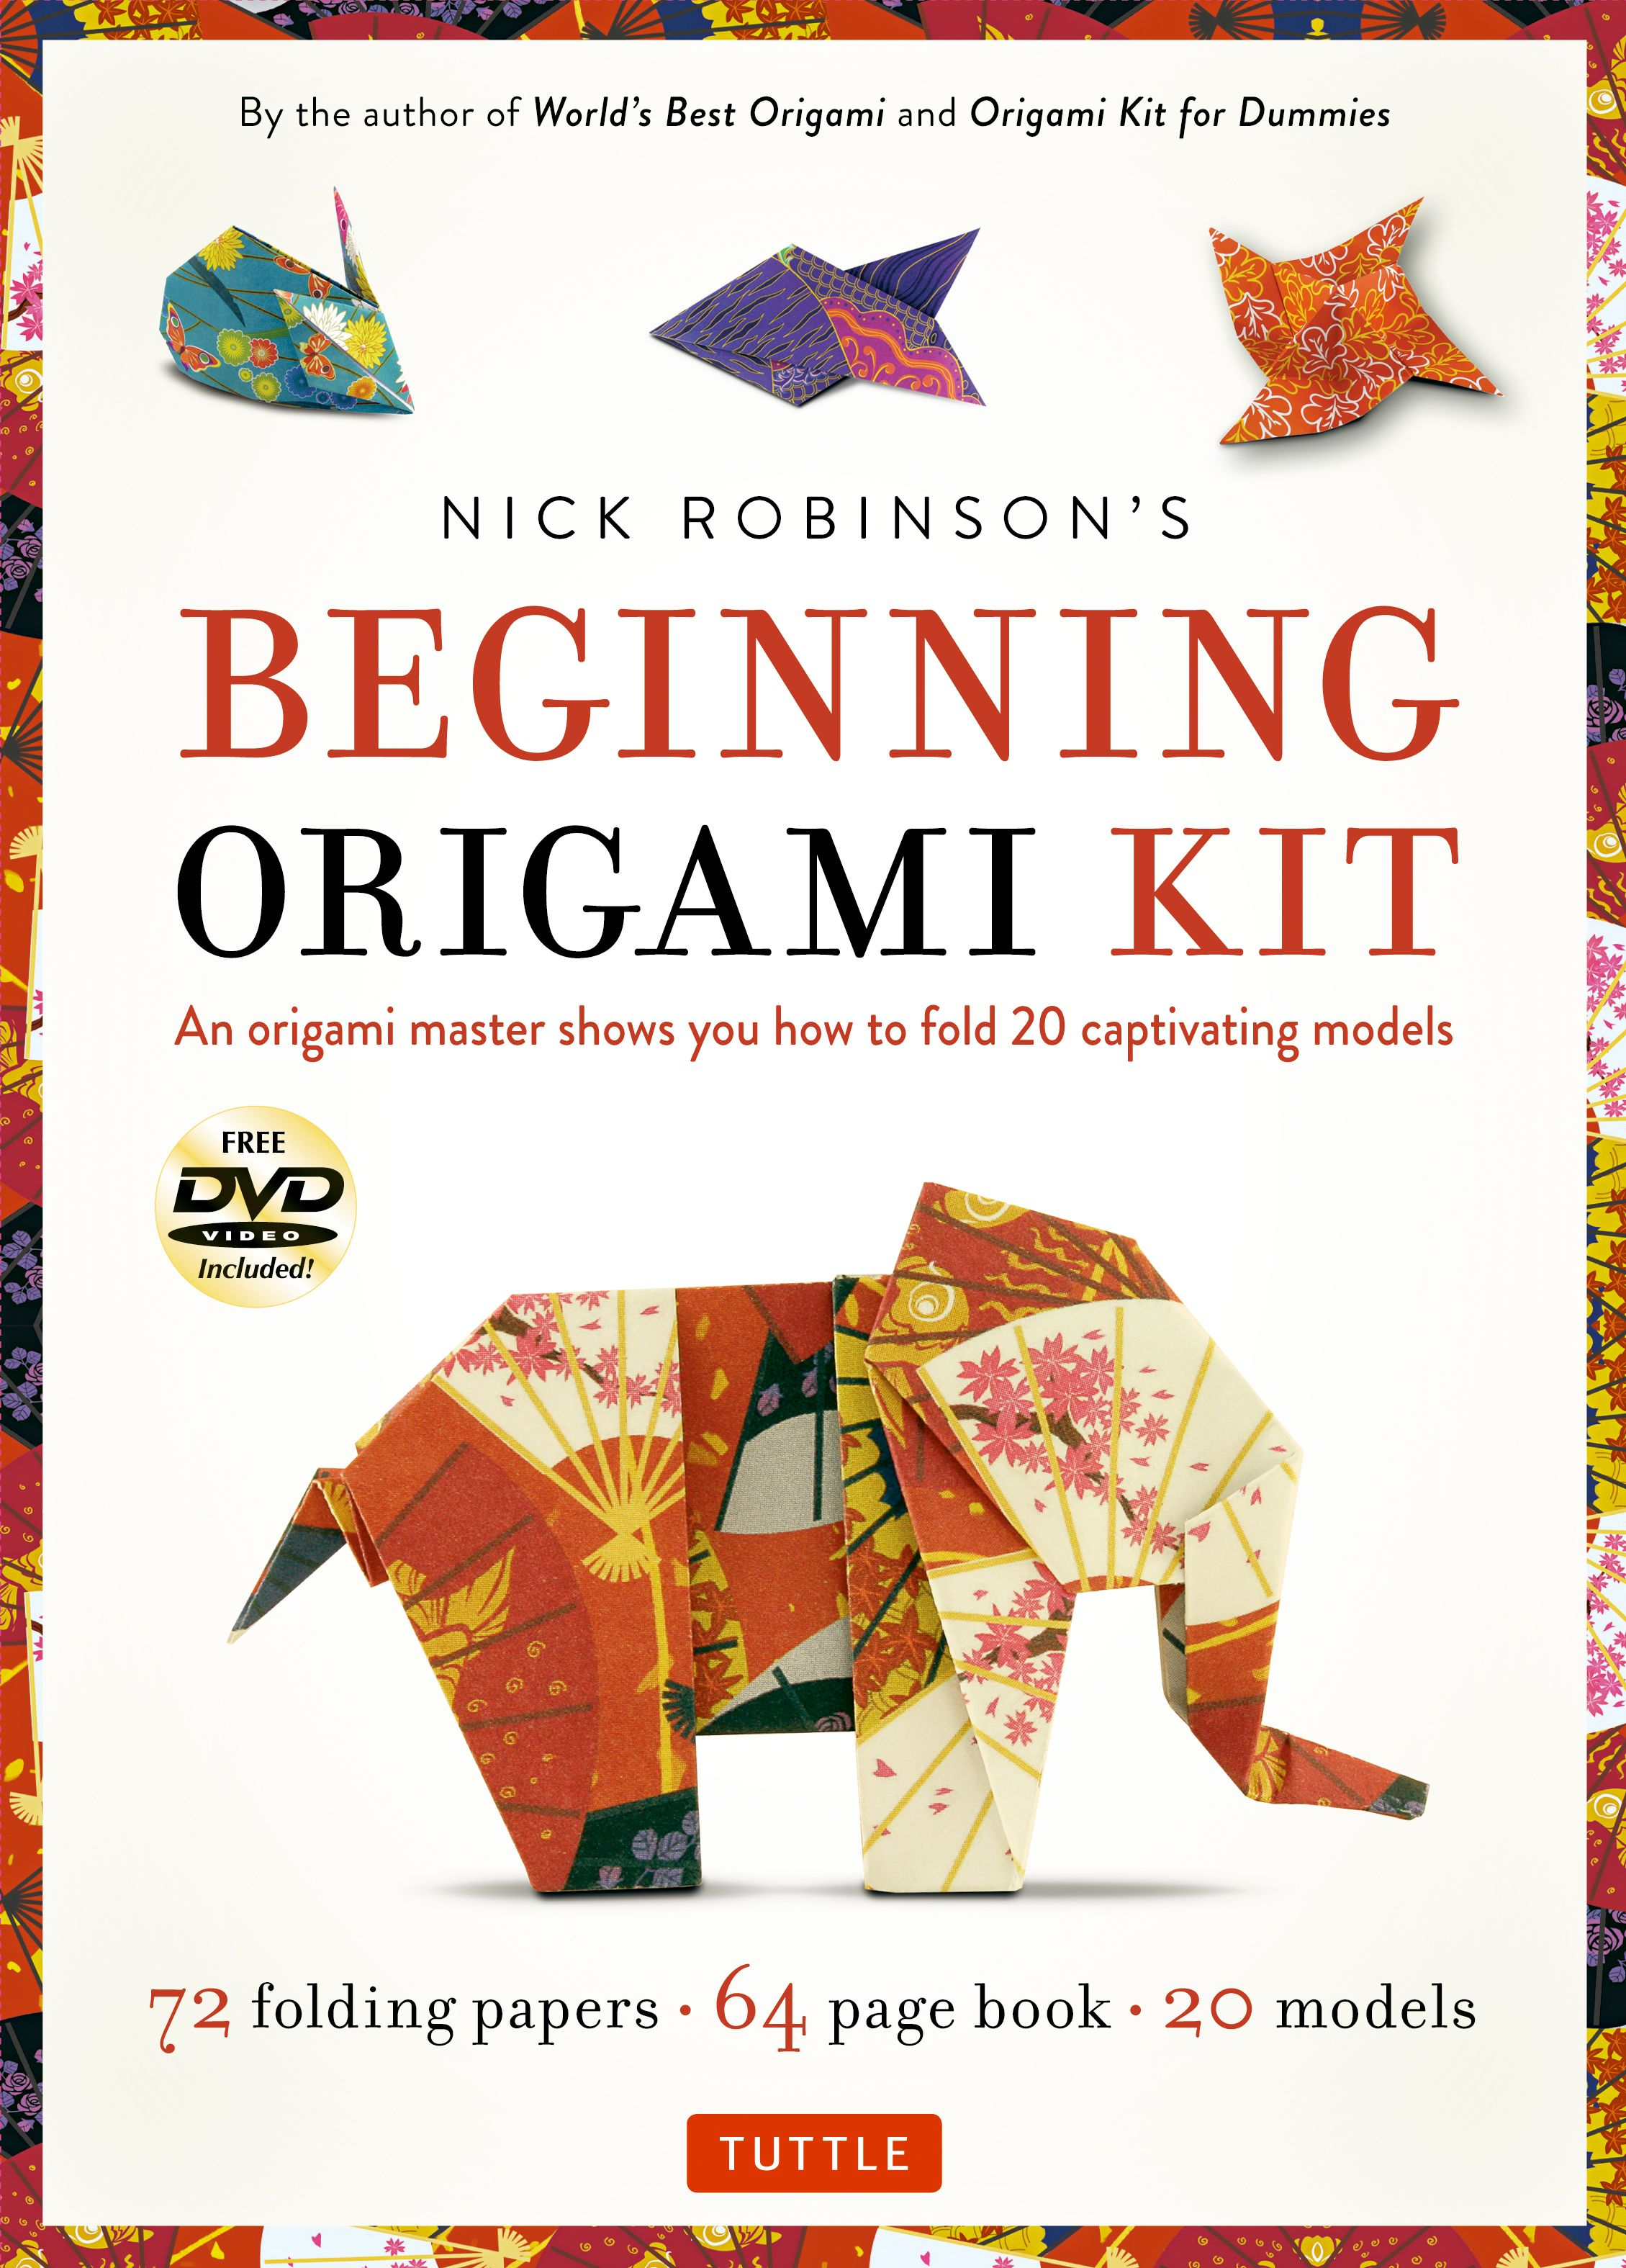 Nick robinsons latest kit is a good introduction to folding learning the japanese art of paper folding enables you to make enchanting origami objects from simple pieces of paper world renowned origami artist and jeuxipadfo Choice Image